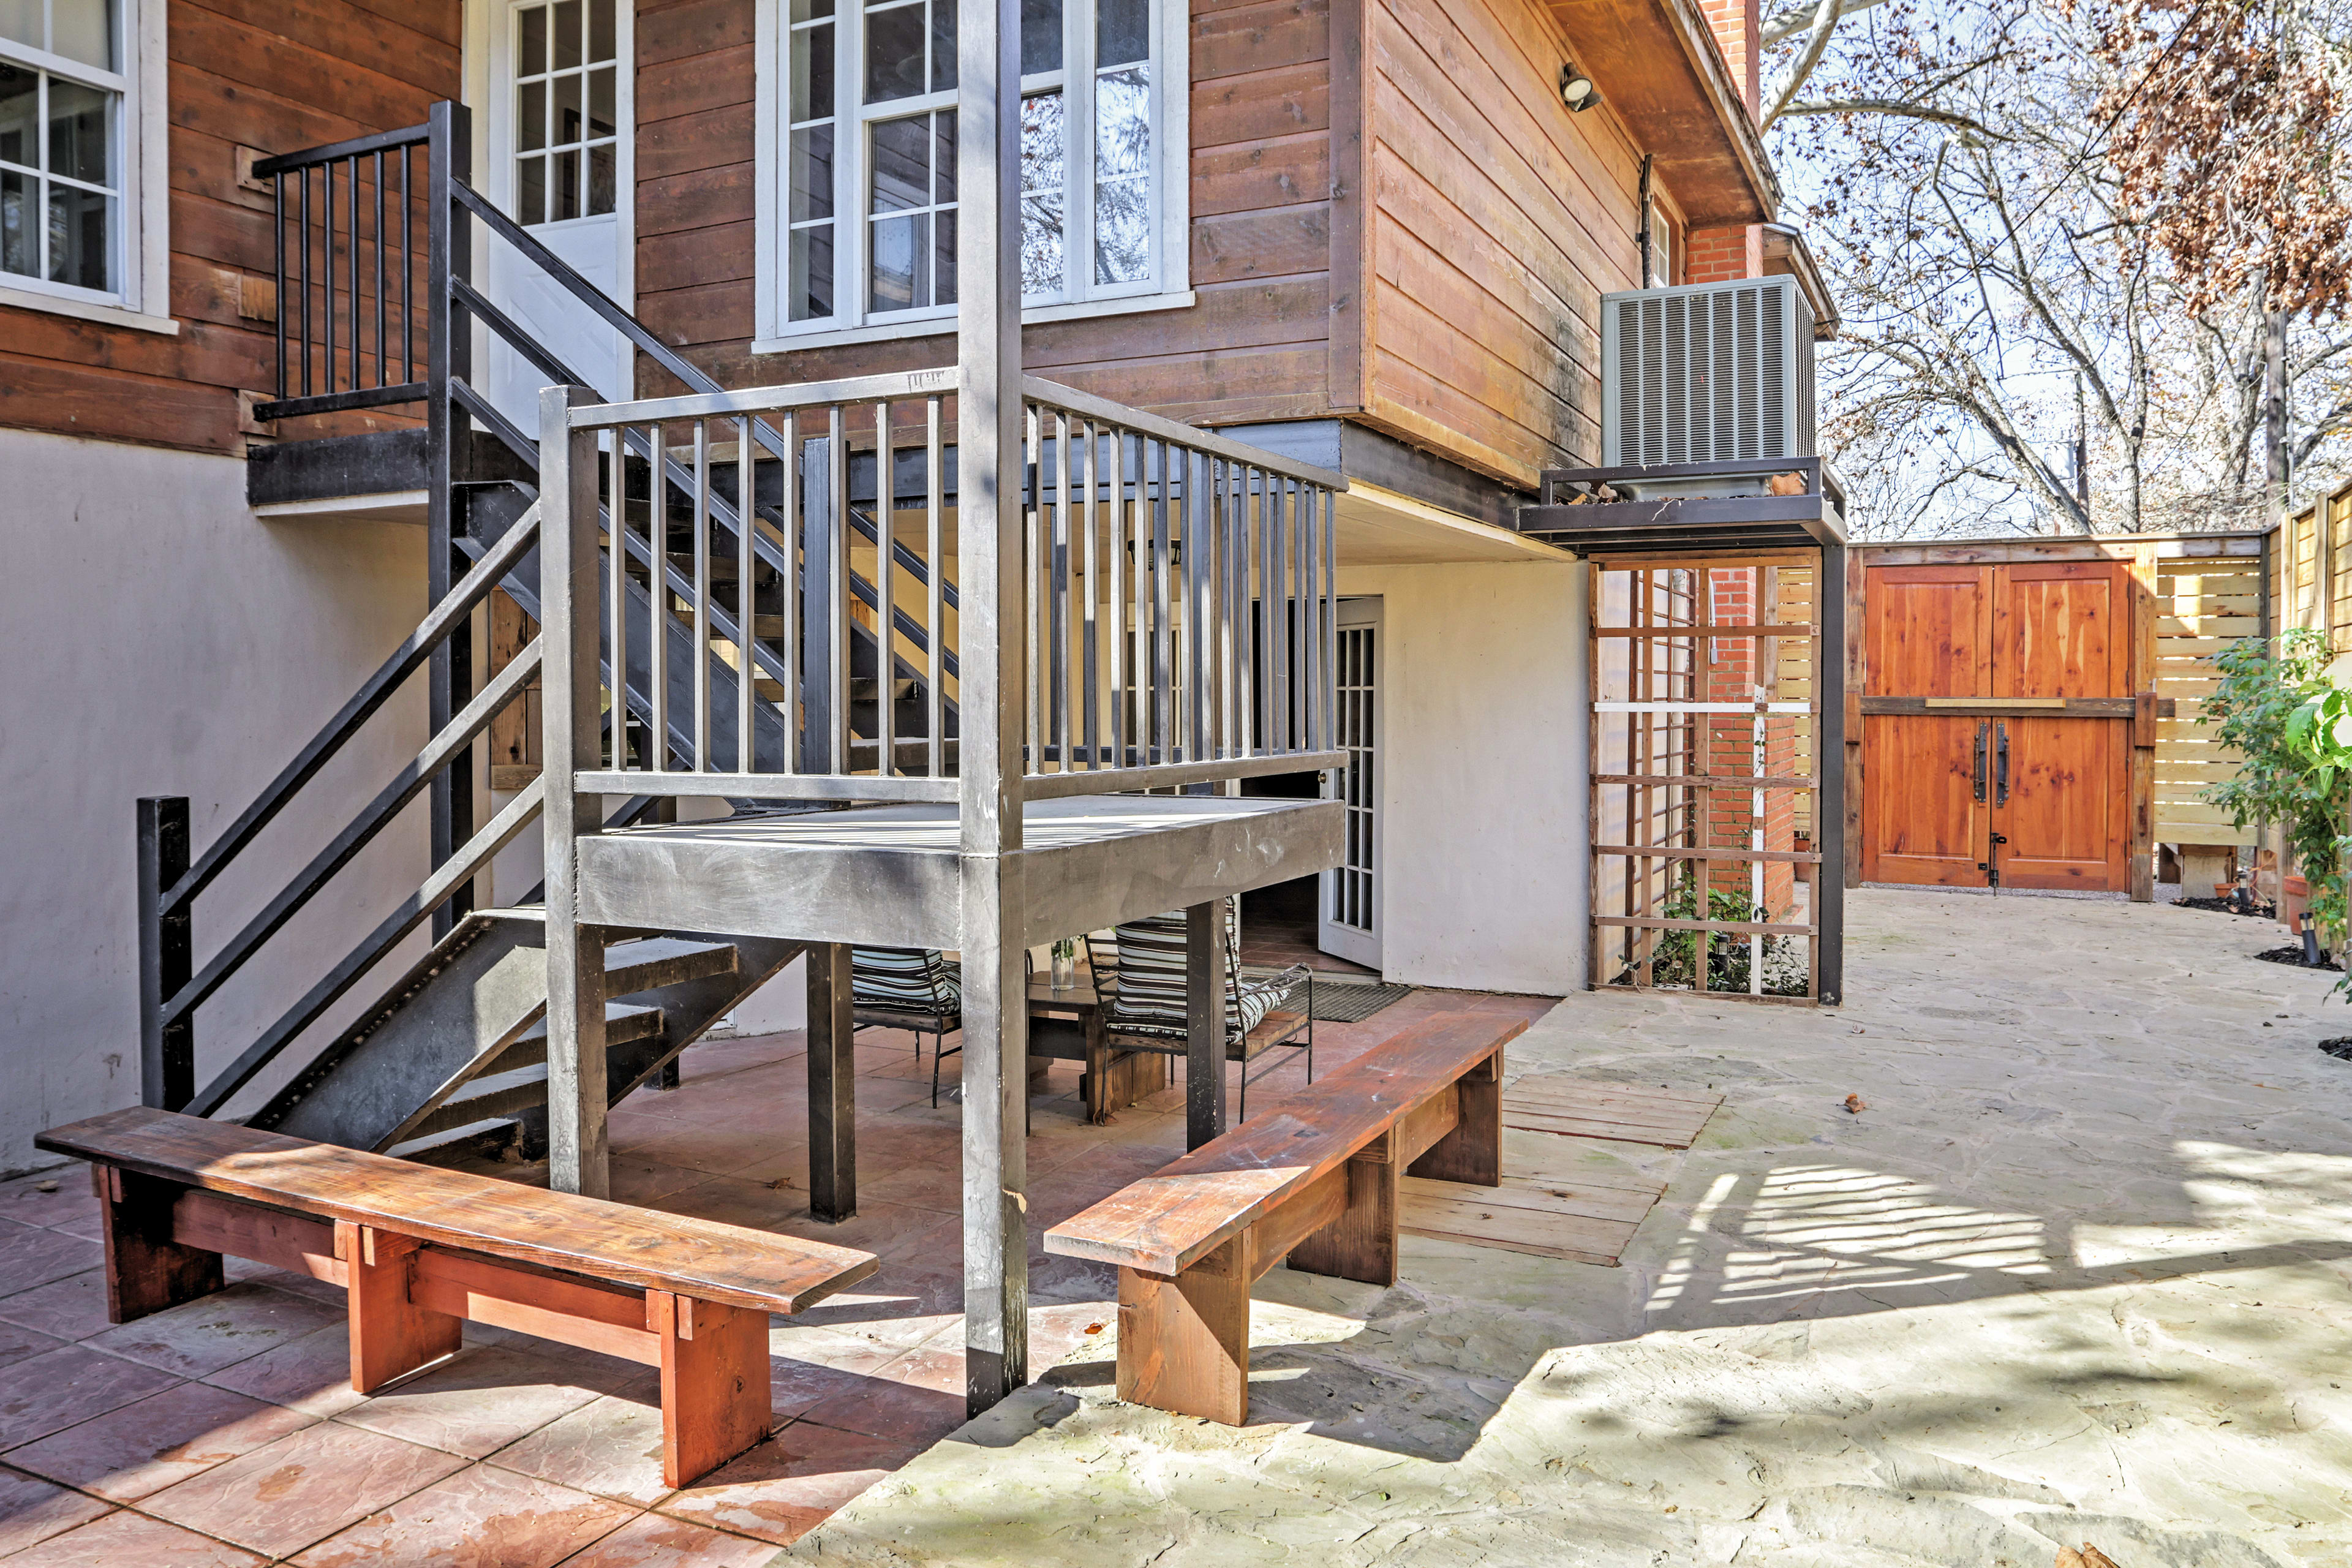 Home Exterior | Multiple Seating Areas